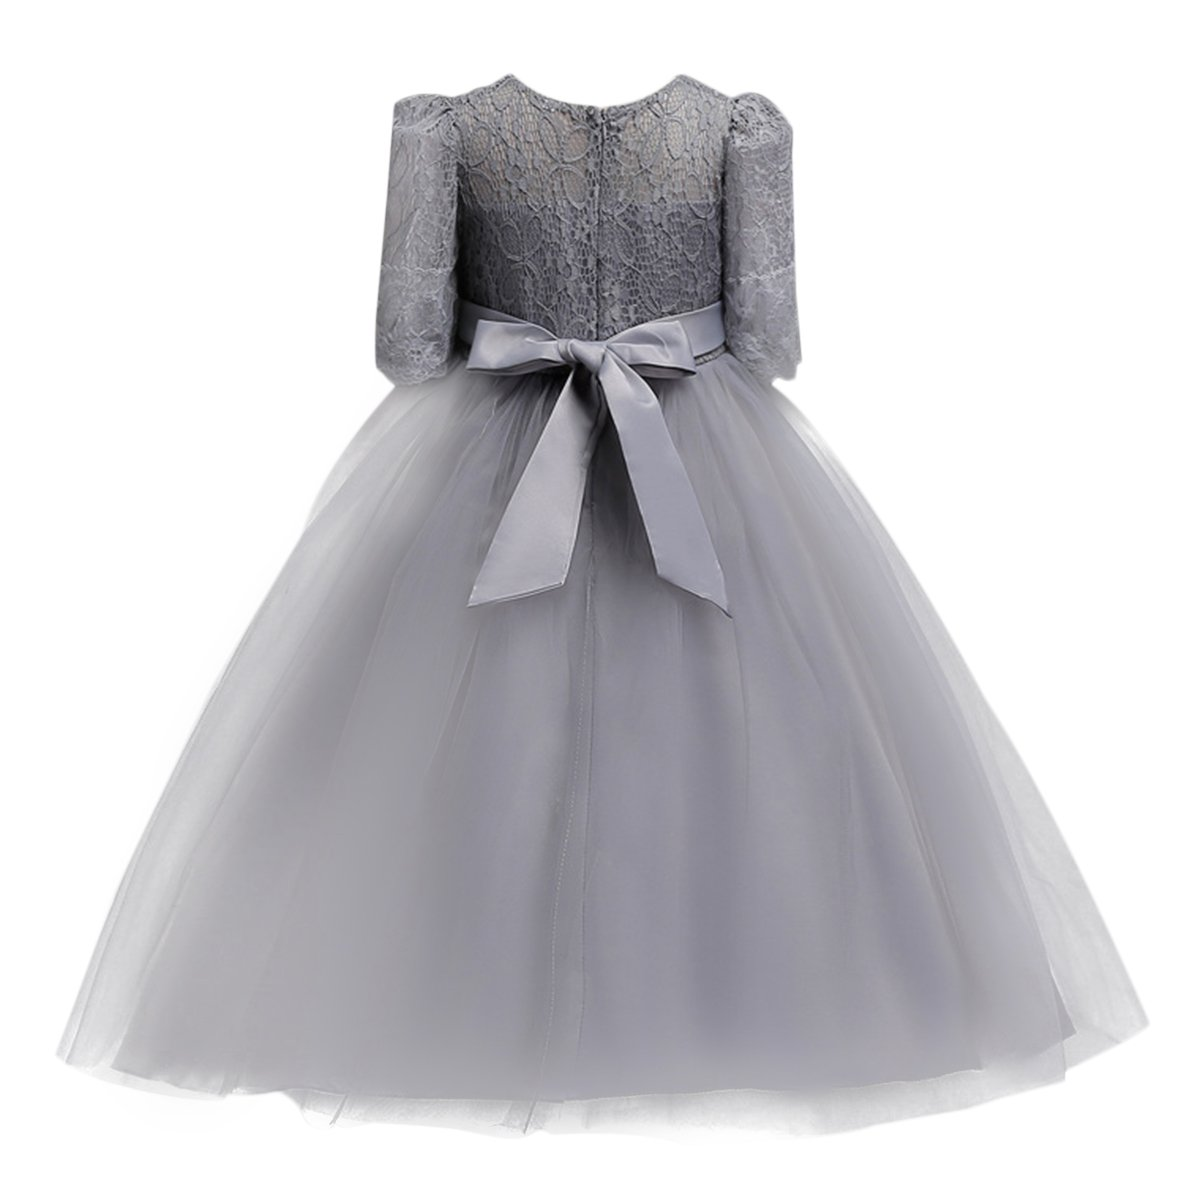 7be23b9a1404a Amazon.com: Little Big Girl Lace Flower Princess Formal Dress for Kids  Tulle Party Dance Ball Gown Wedding Pageant: Clothing